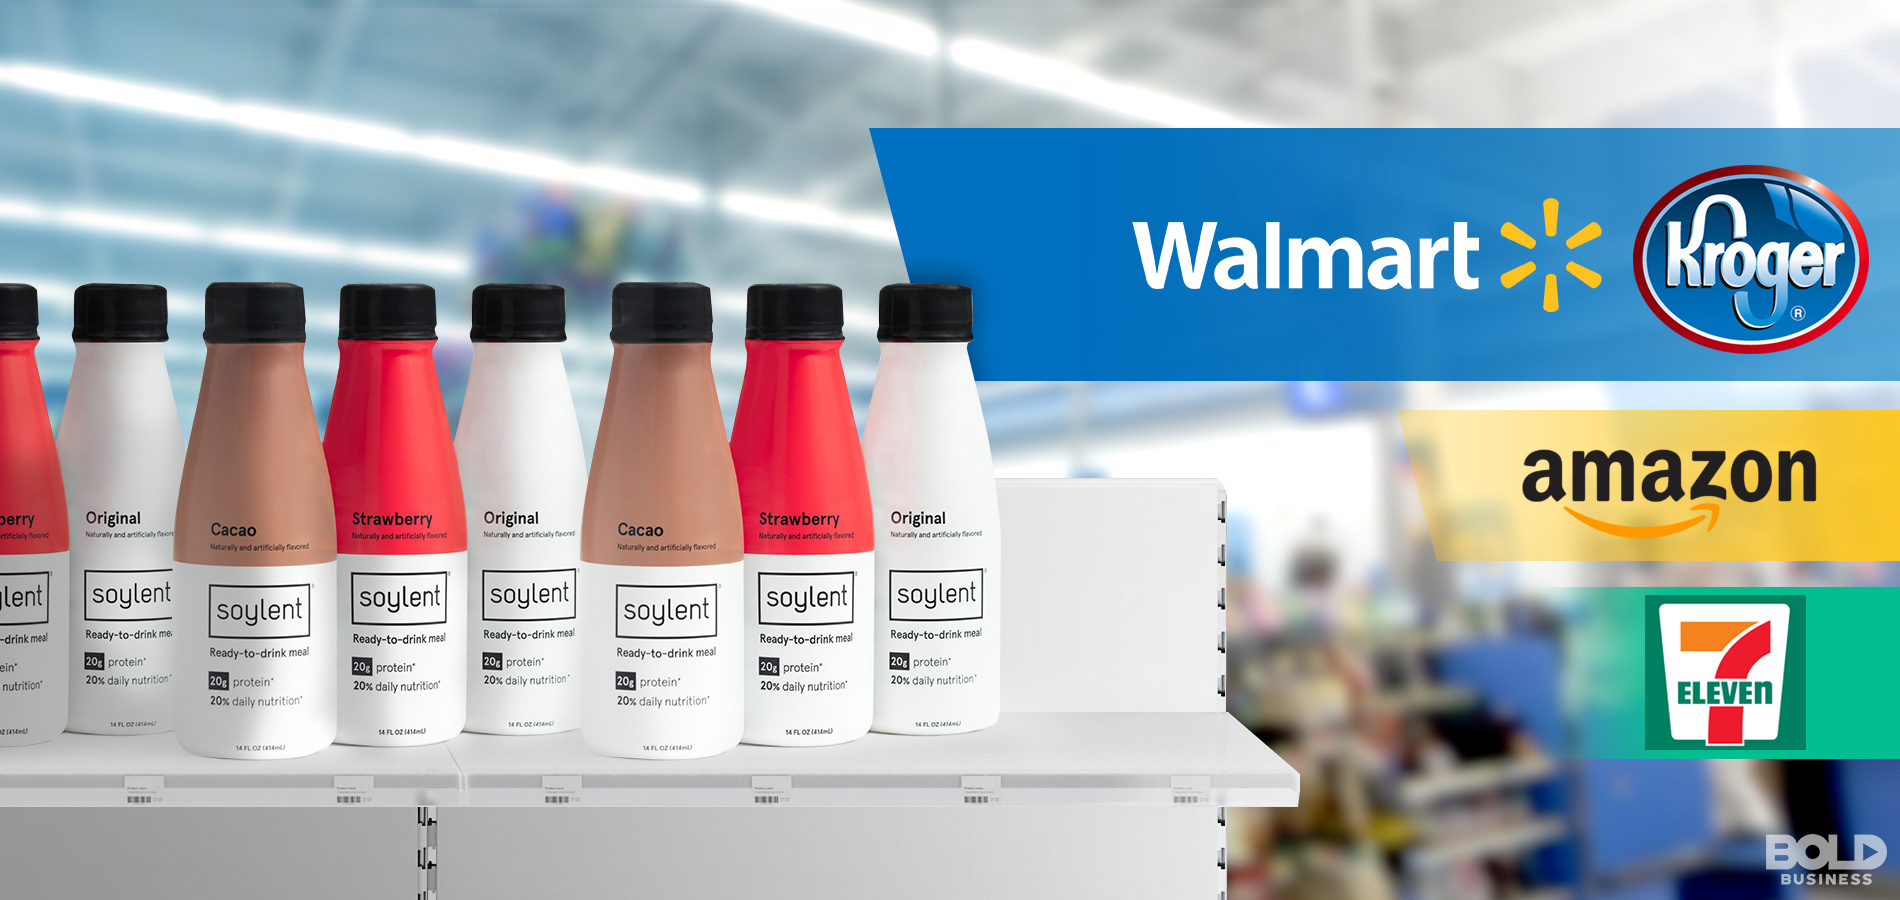 Soylent: Silicon Valley Meal Replacement Favorite, Now in Retail Stores